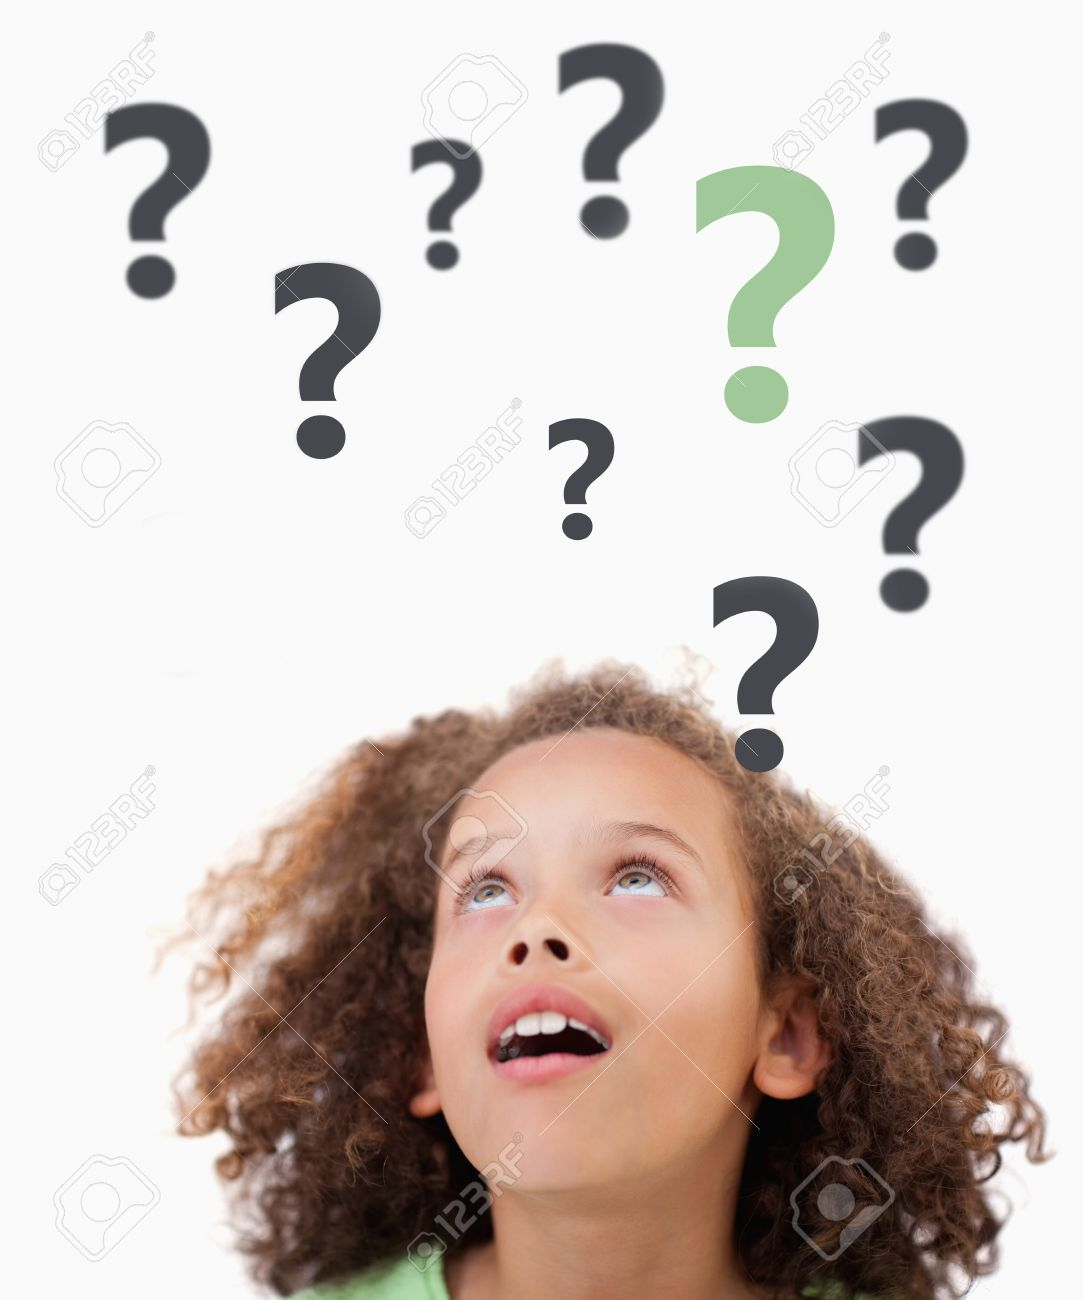 Thinking child with question marks above her on white background looking up Stock Photo - 18123556